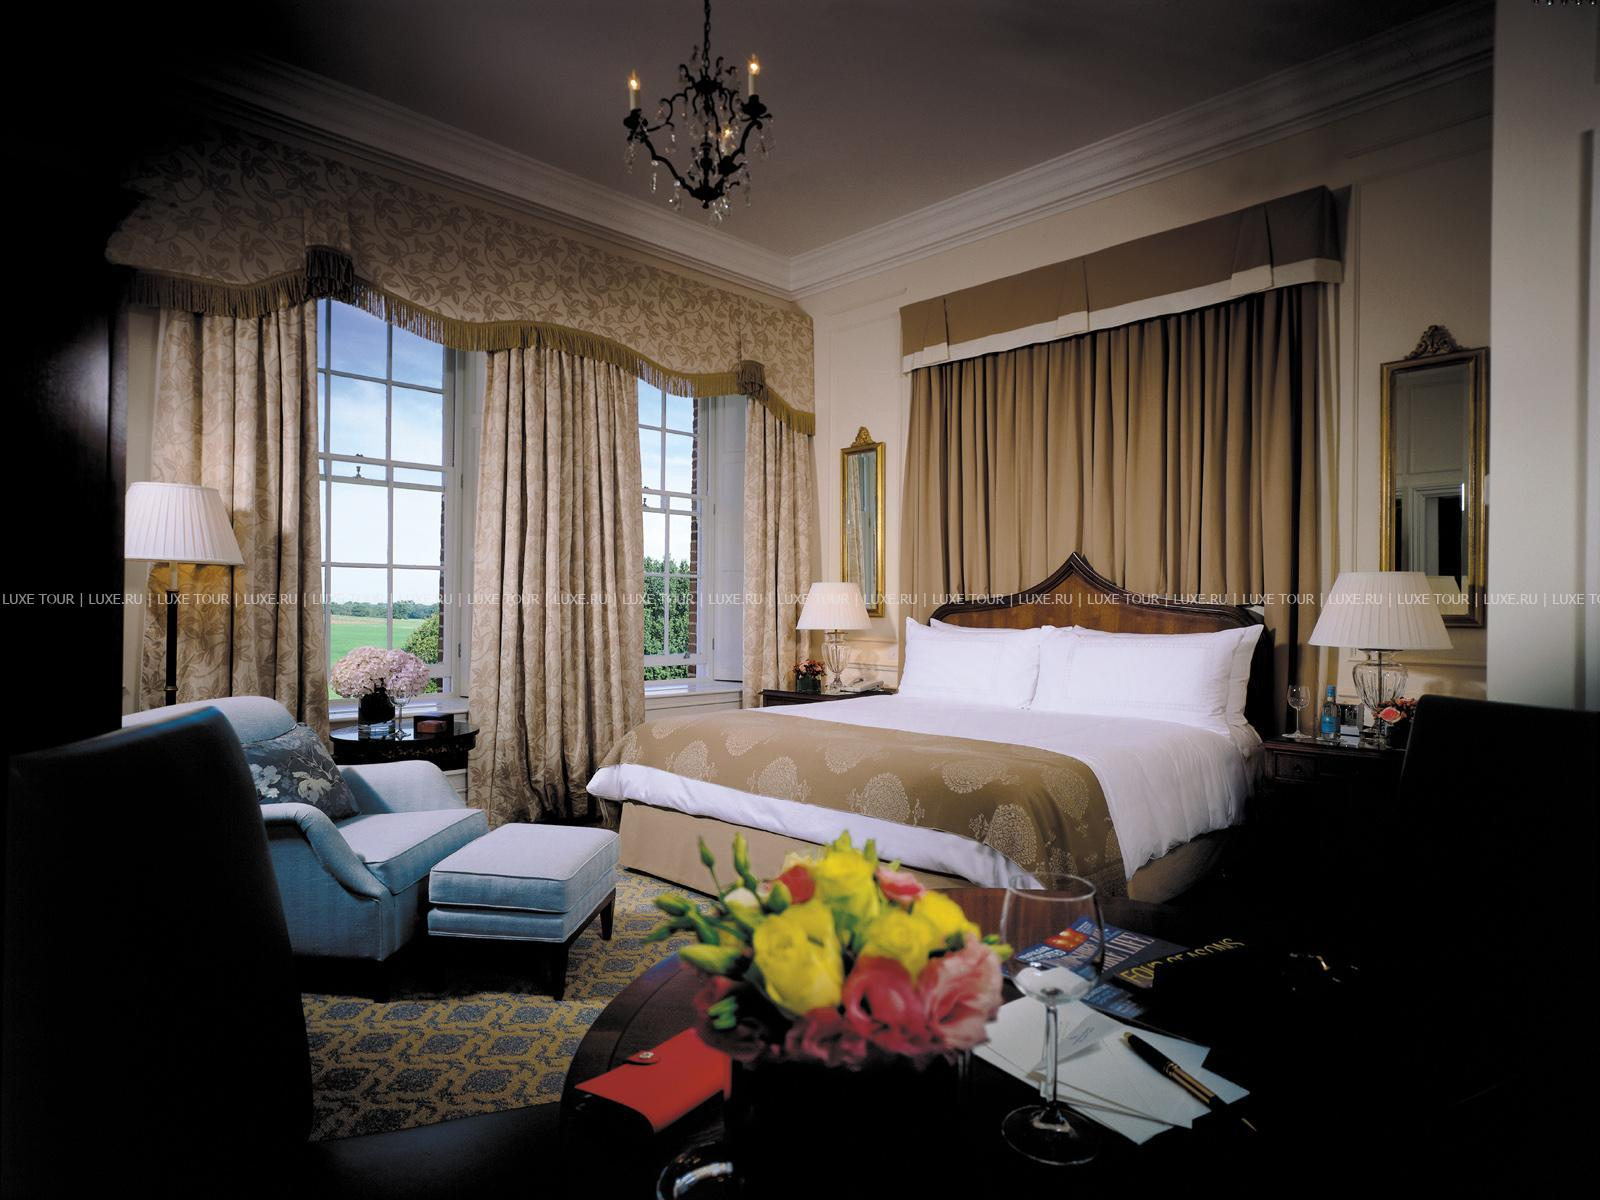 four seasons hotel and resort Discounts average $103 off with a four seasons hotels and resorts promo code or coupon 39 four seasons hotels and resorts coupons now on retailmenot.